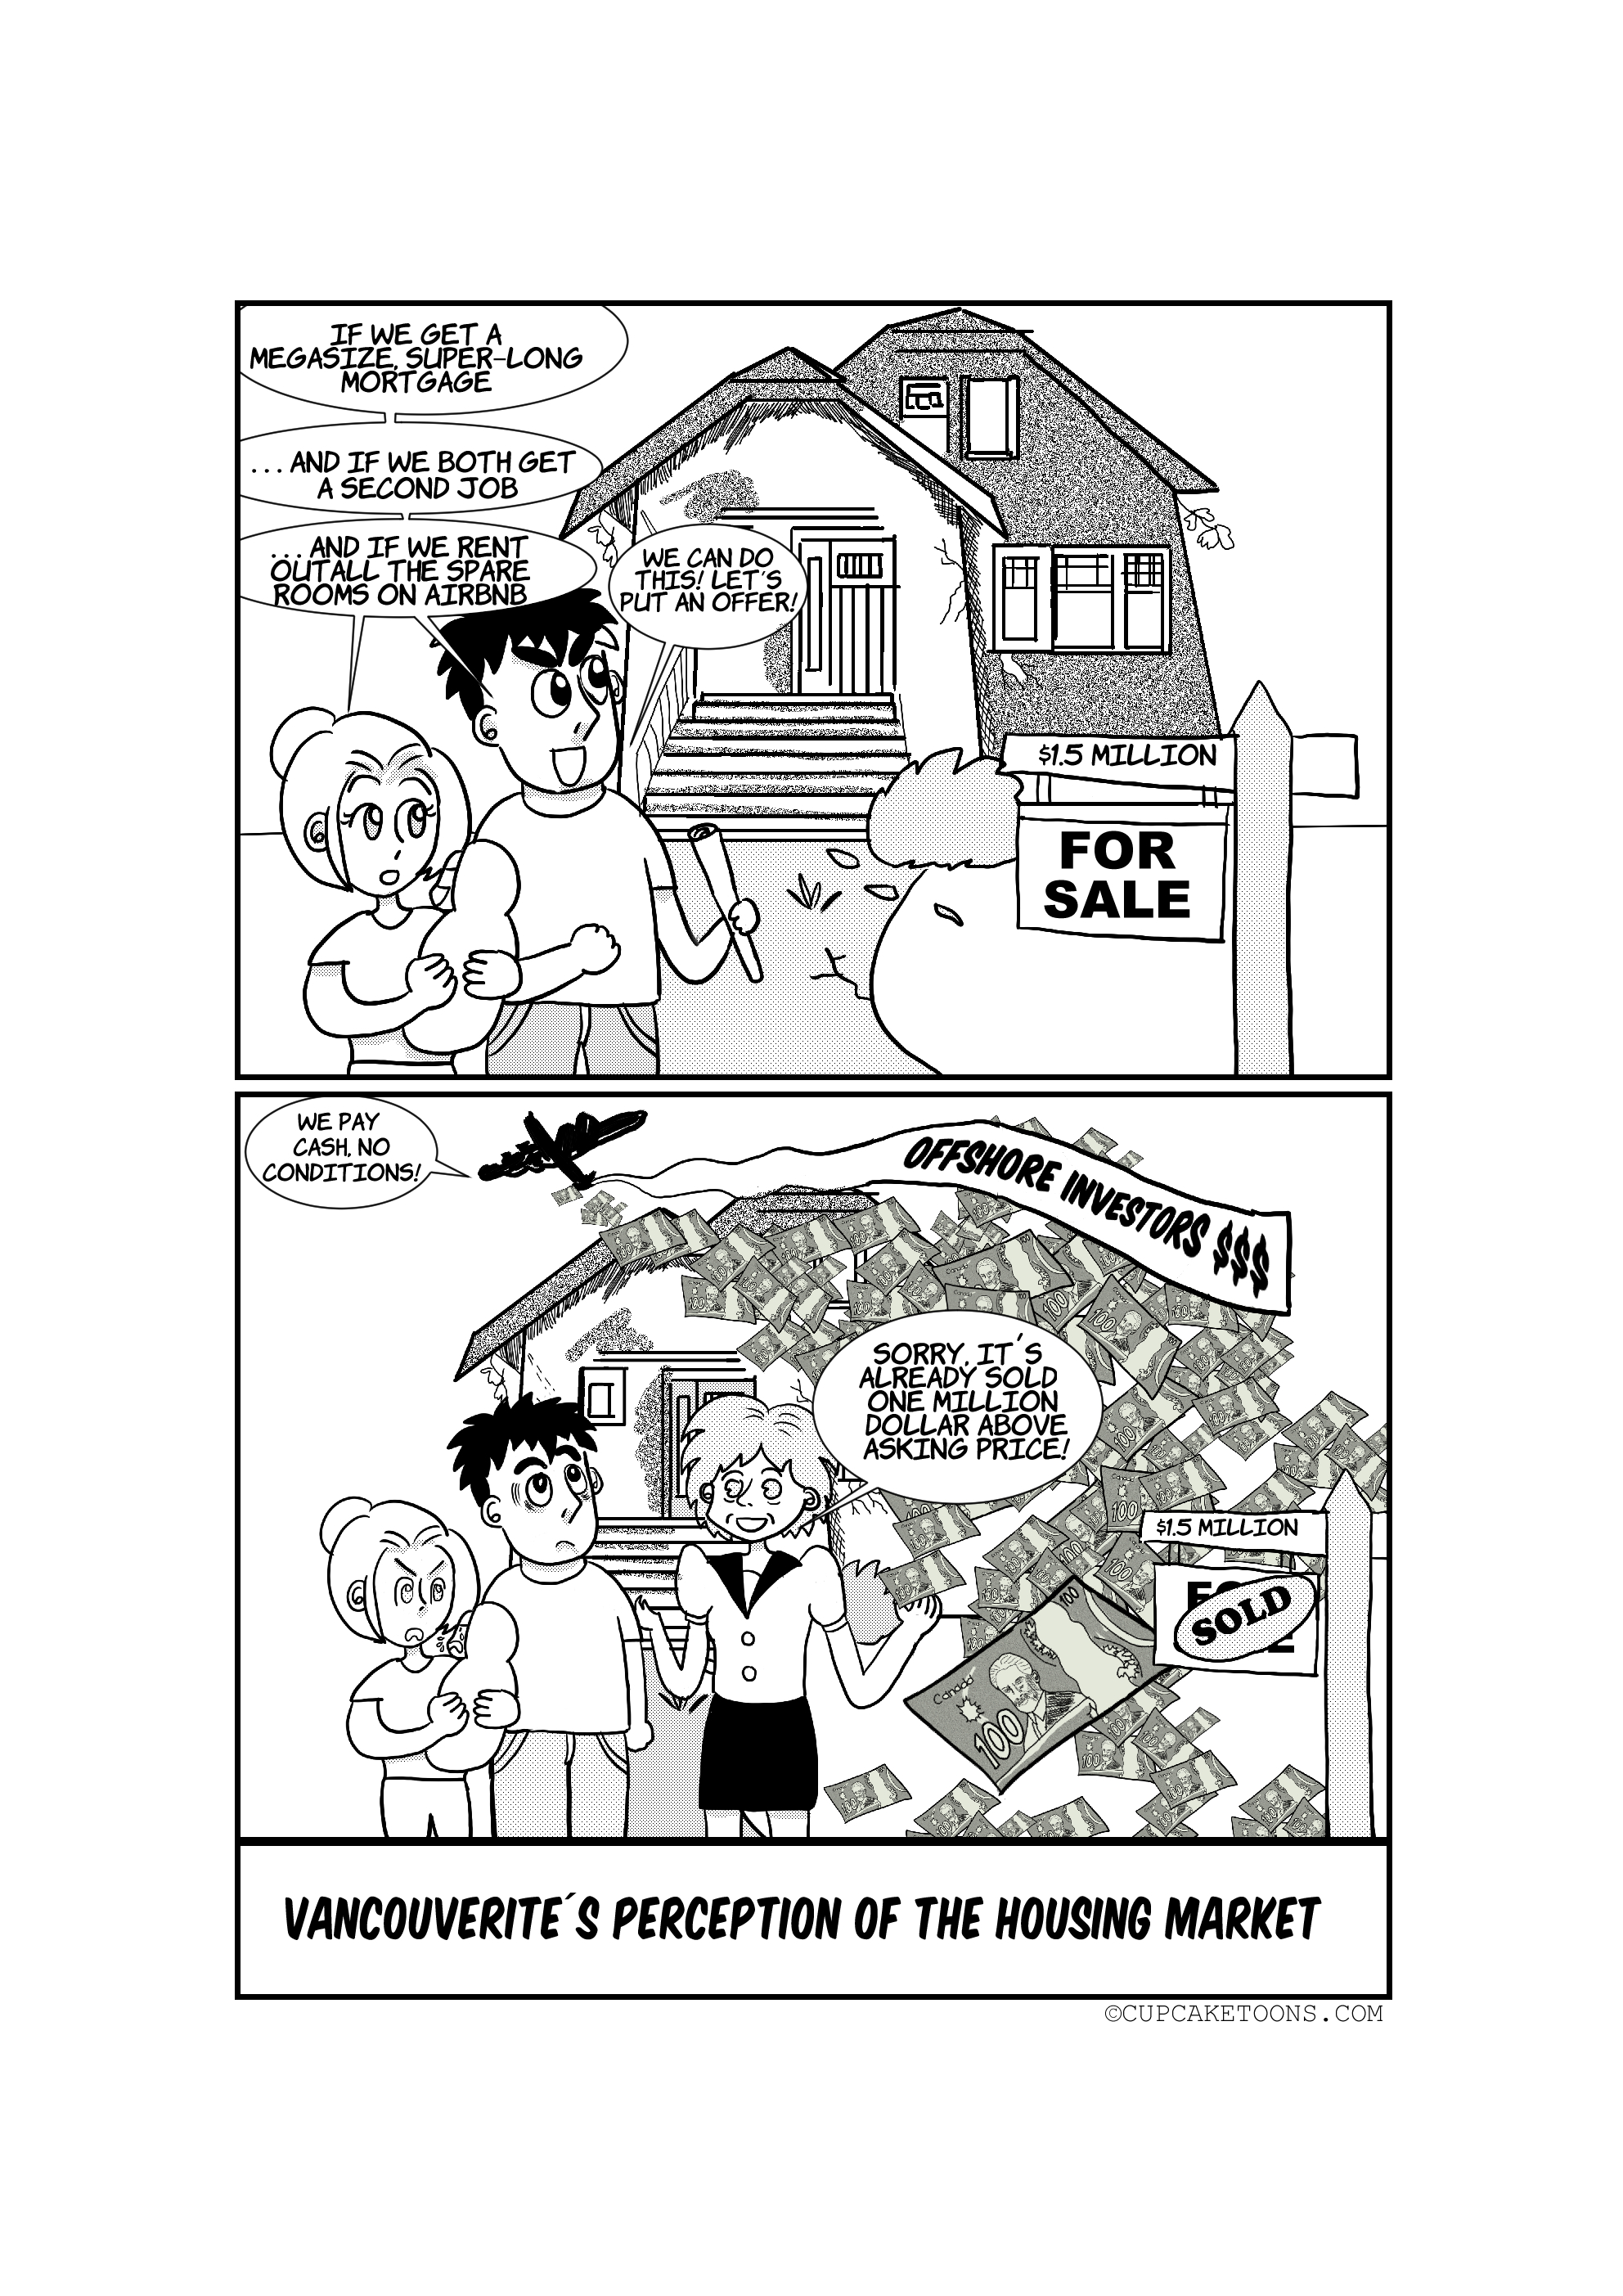 Vancouverite perception of Housing Market